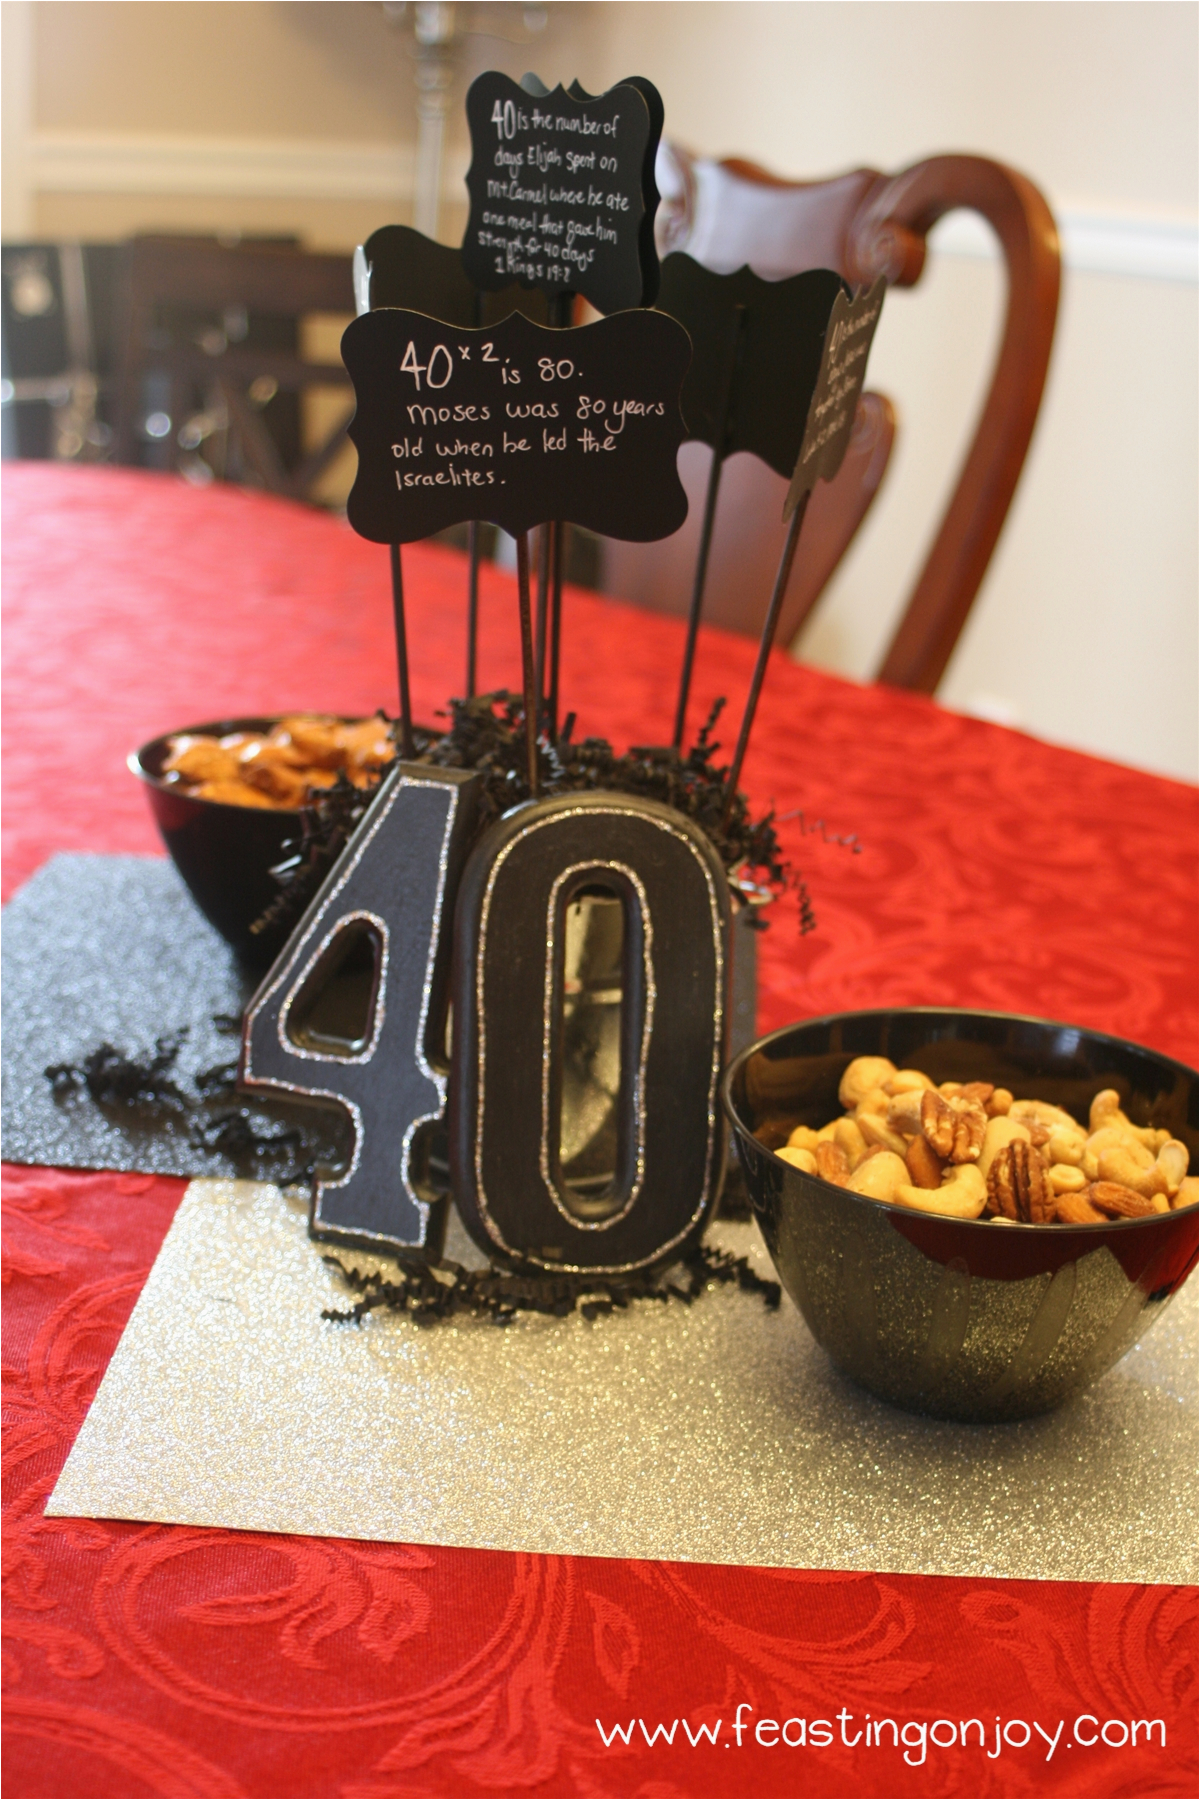 a christian themed manly surprise 40th birthday party